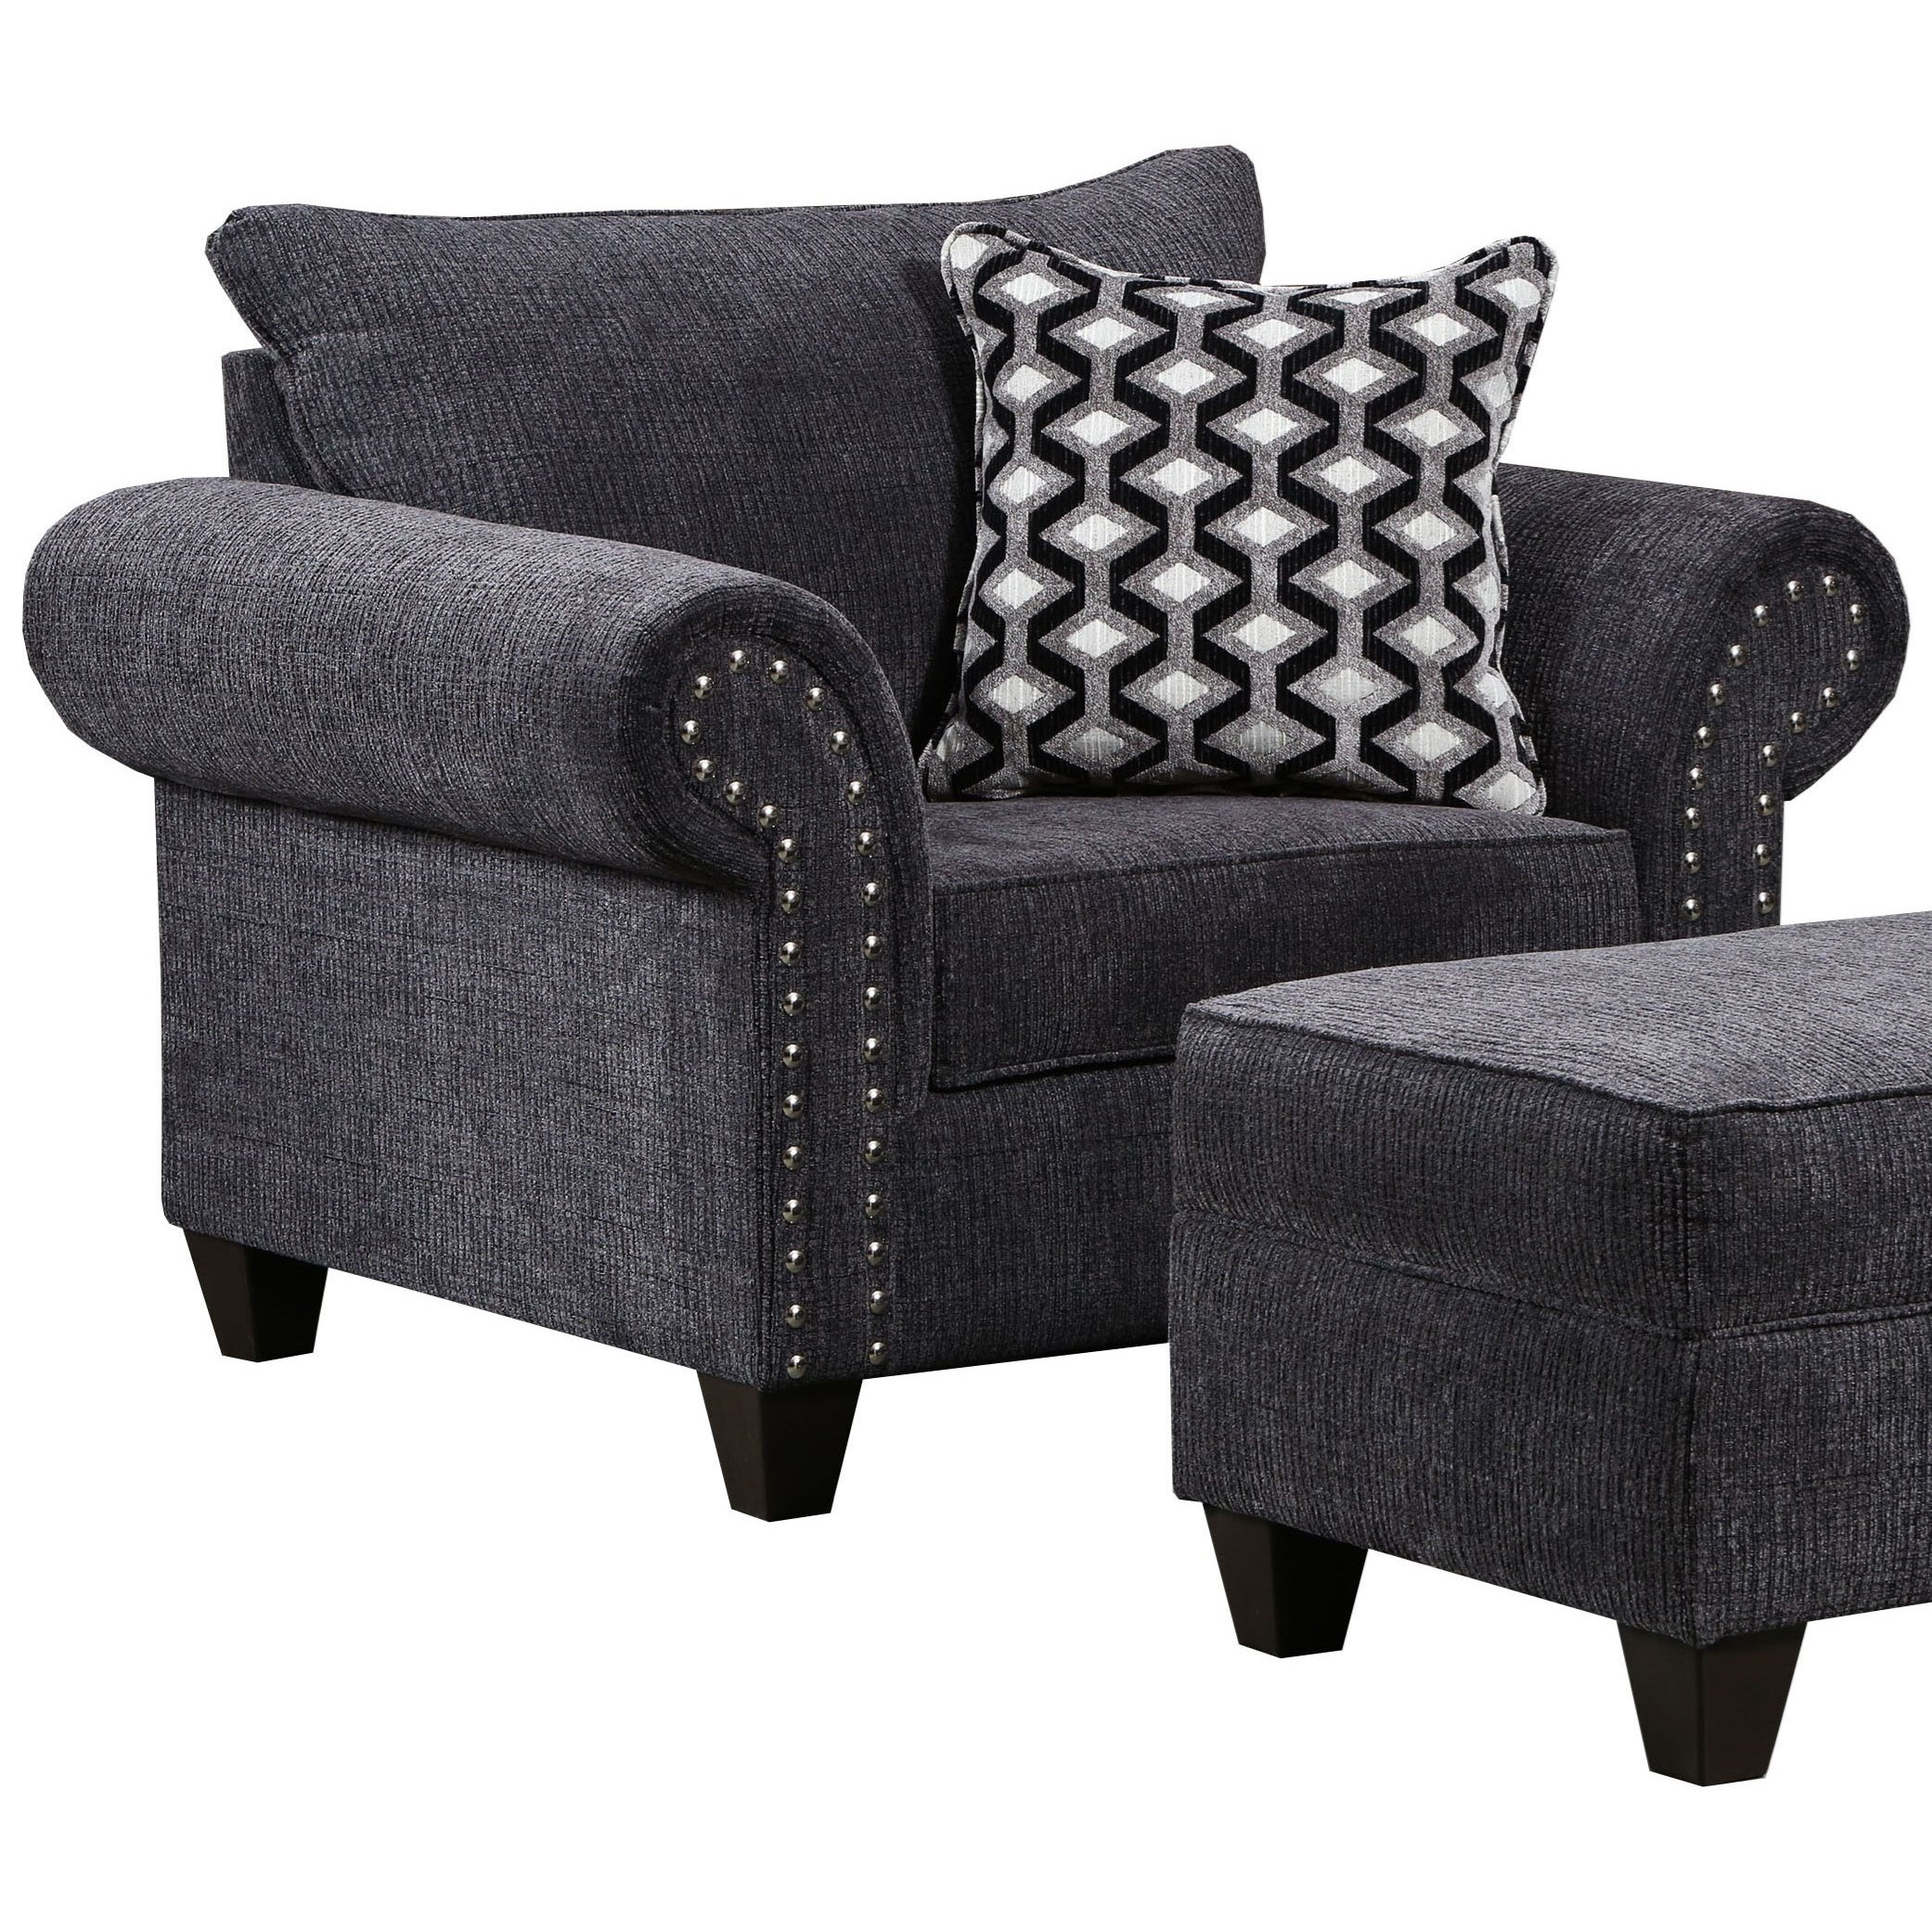 8036 Chair by United Furniture Industries at Dream Home Interiors